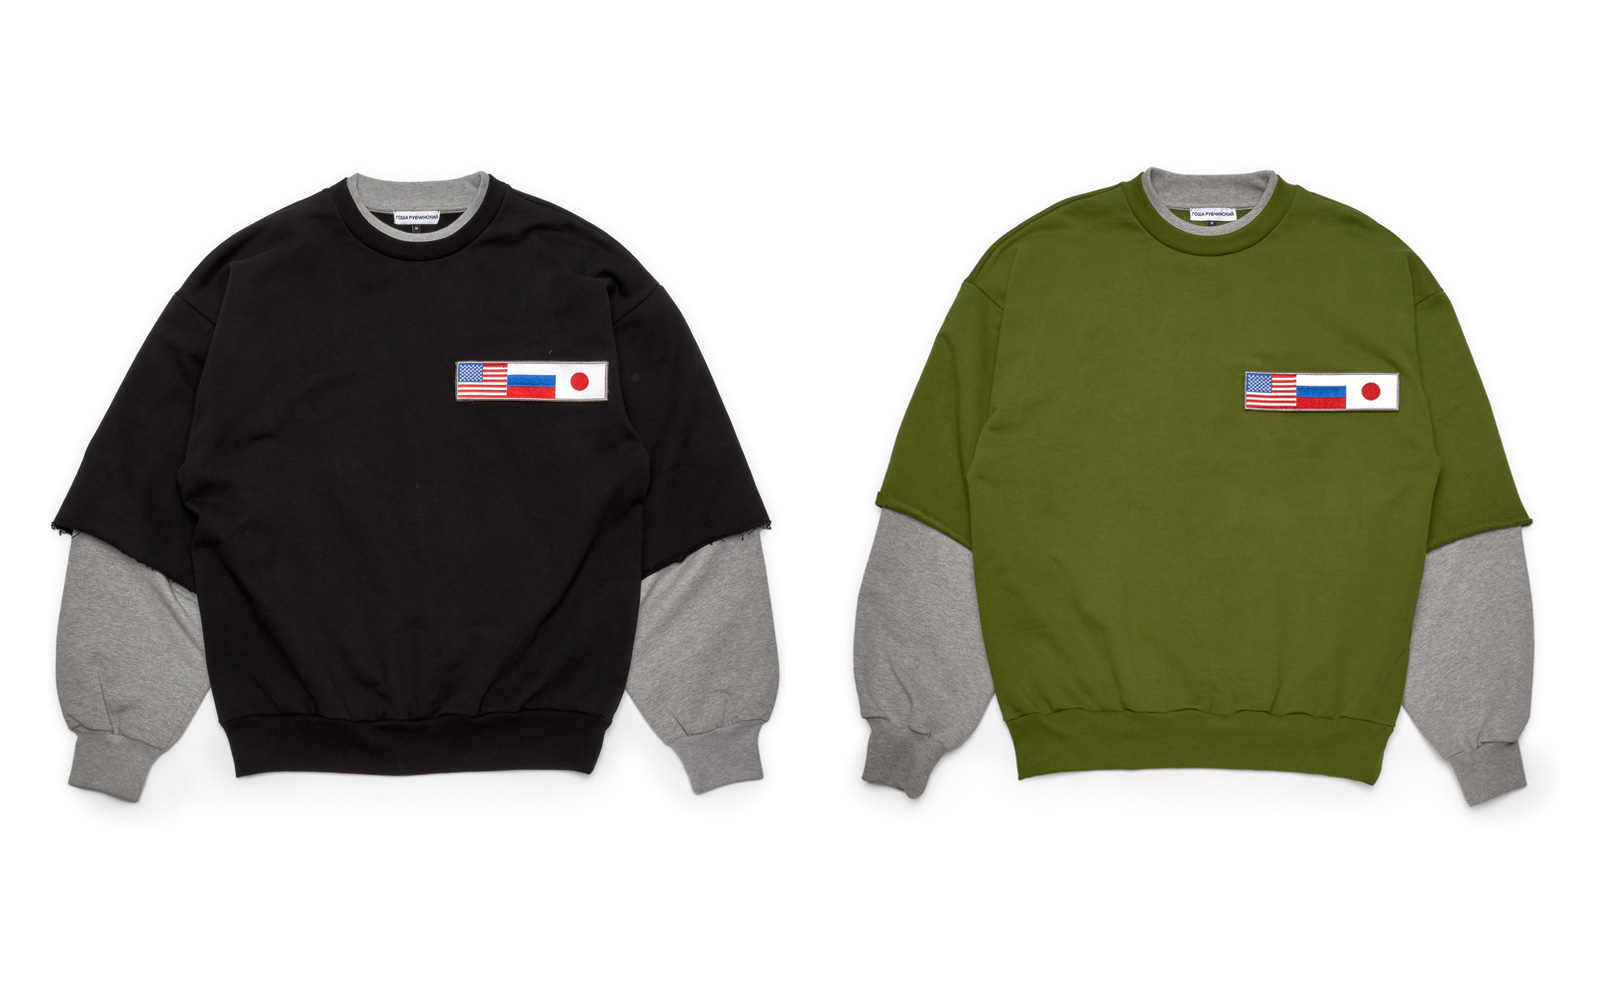 gosha-rubchinskiy-2018aw-3rd-delivery-release-20180929